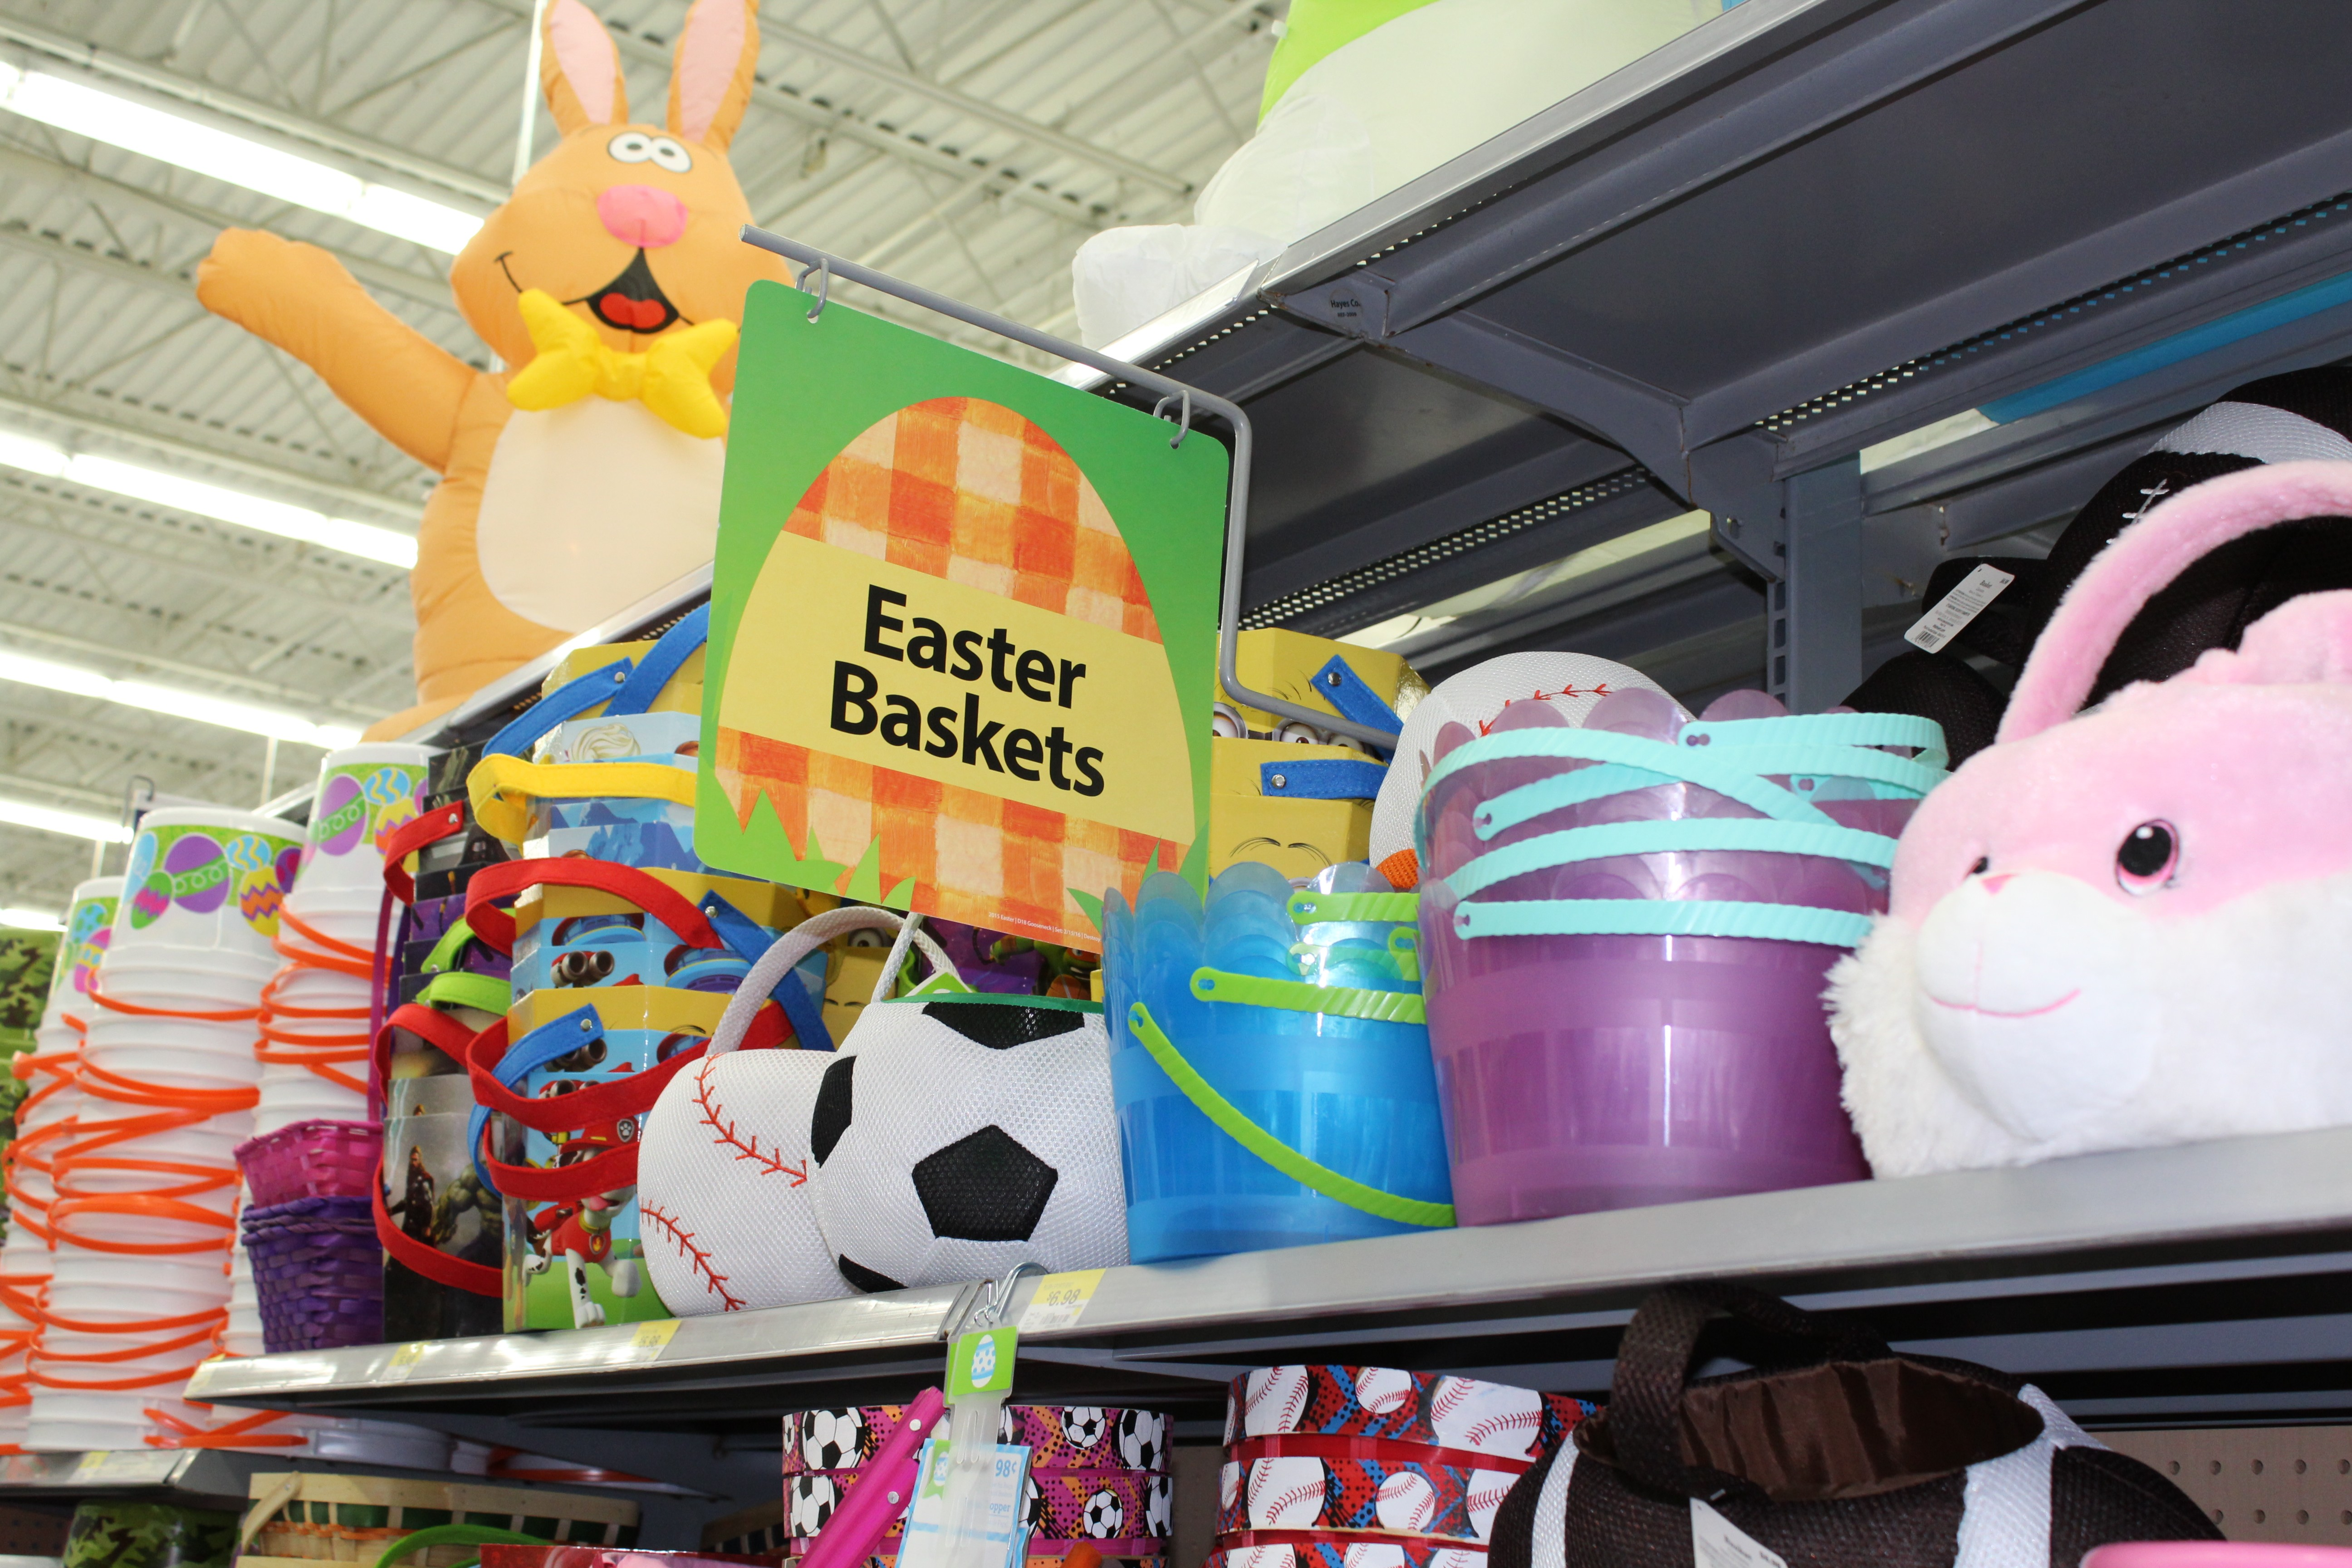 Easter baskets line a shelf in a Walmart store